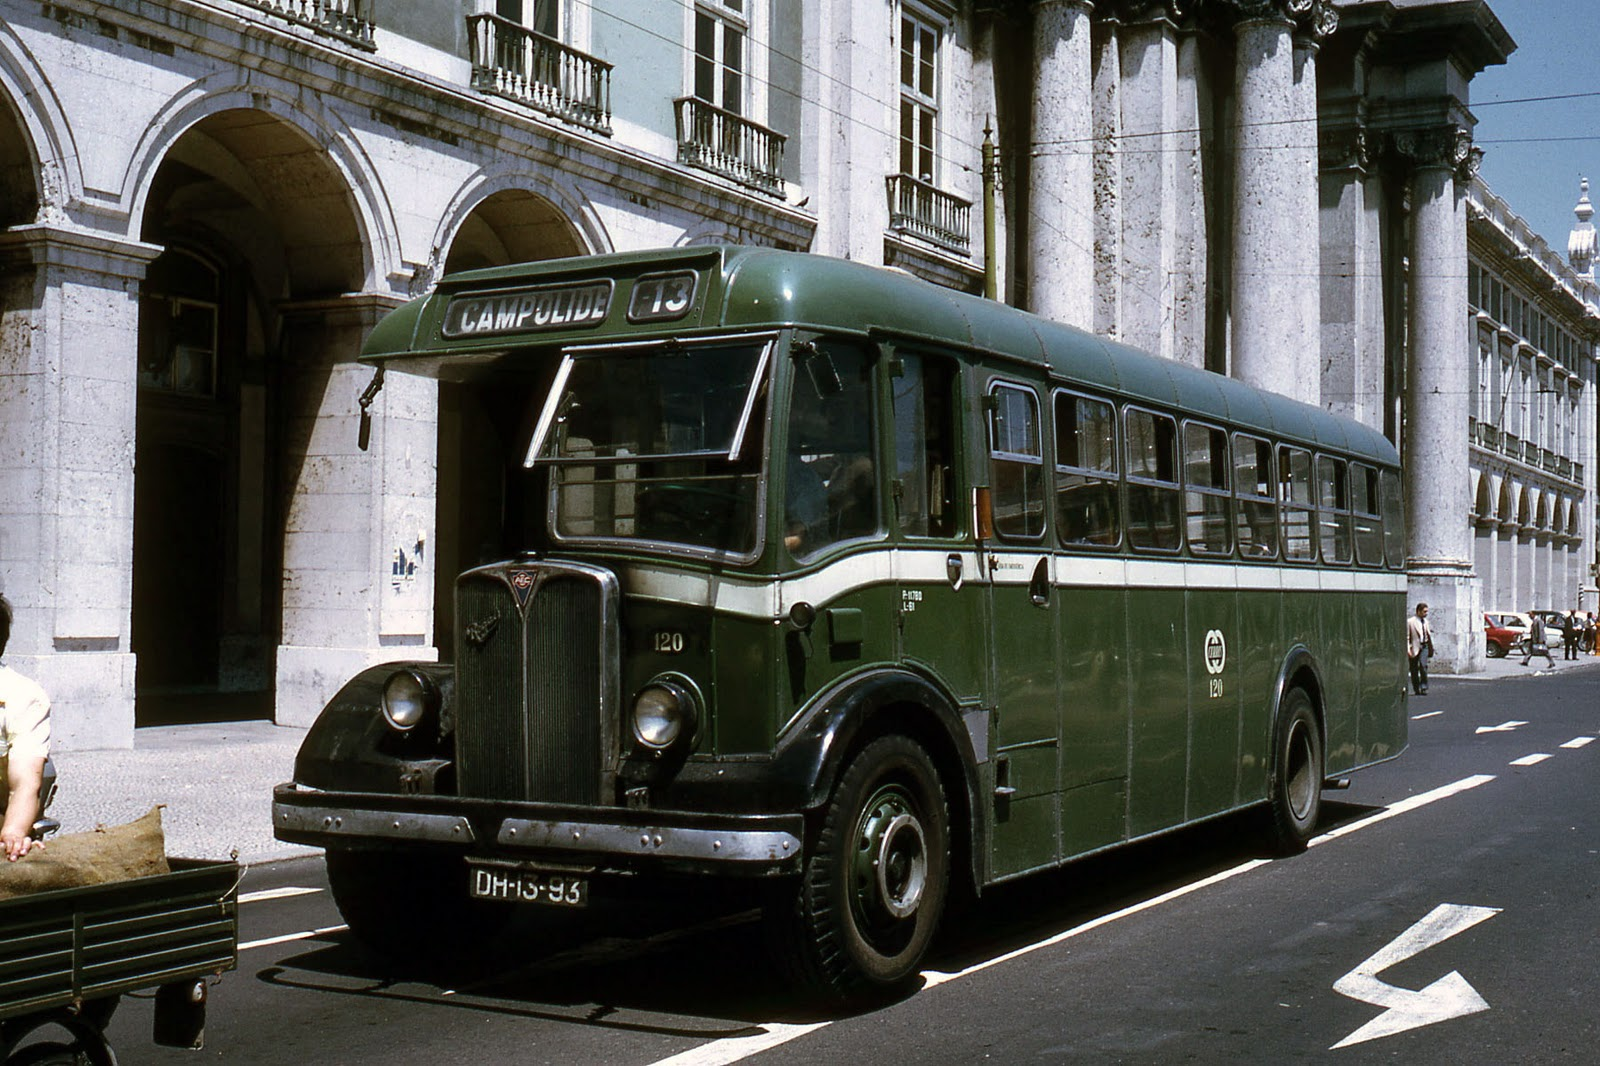 Aec regal photo - 1